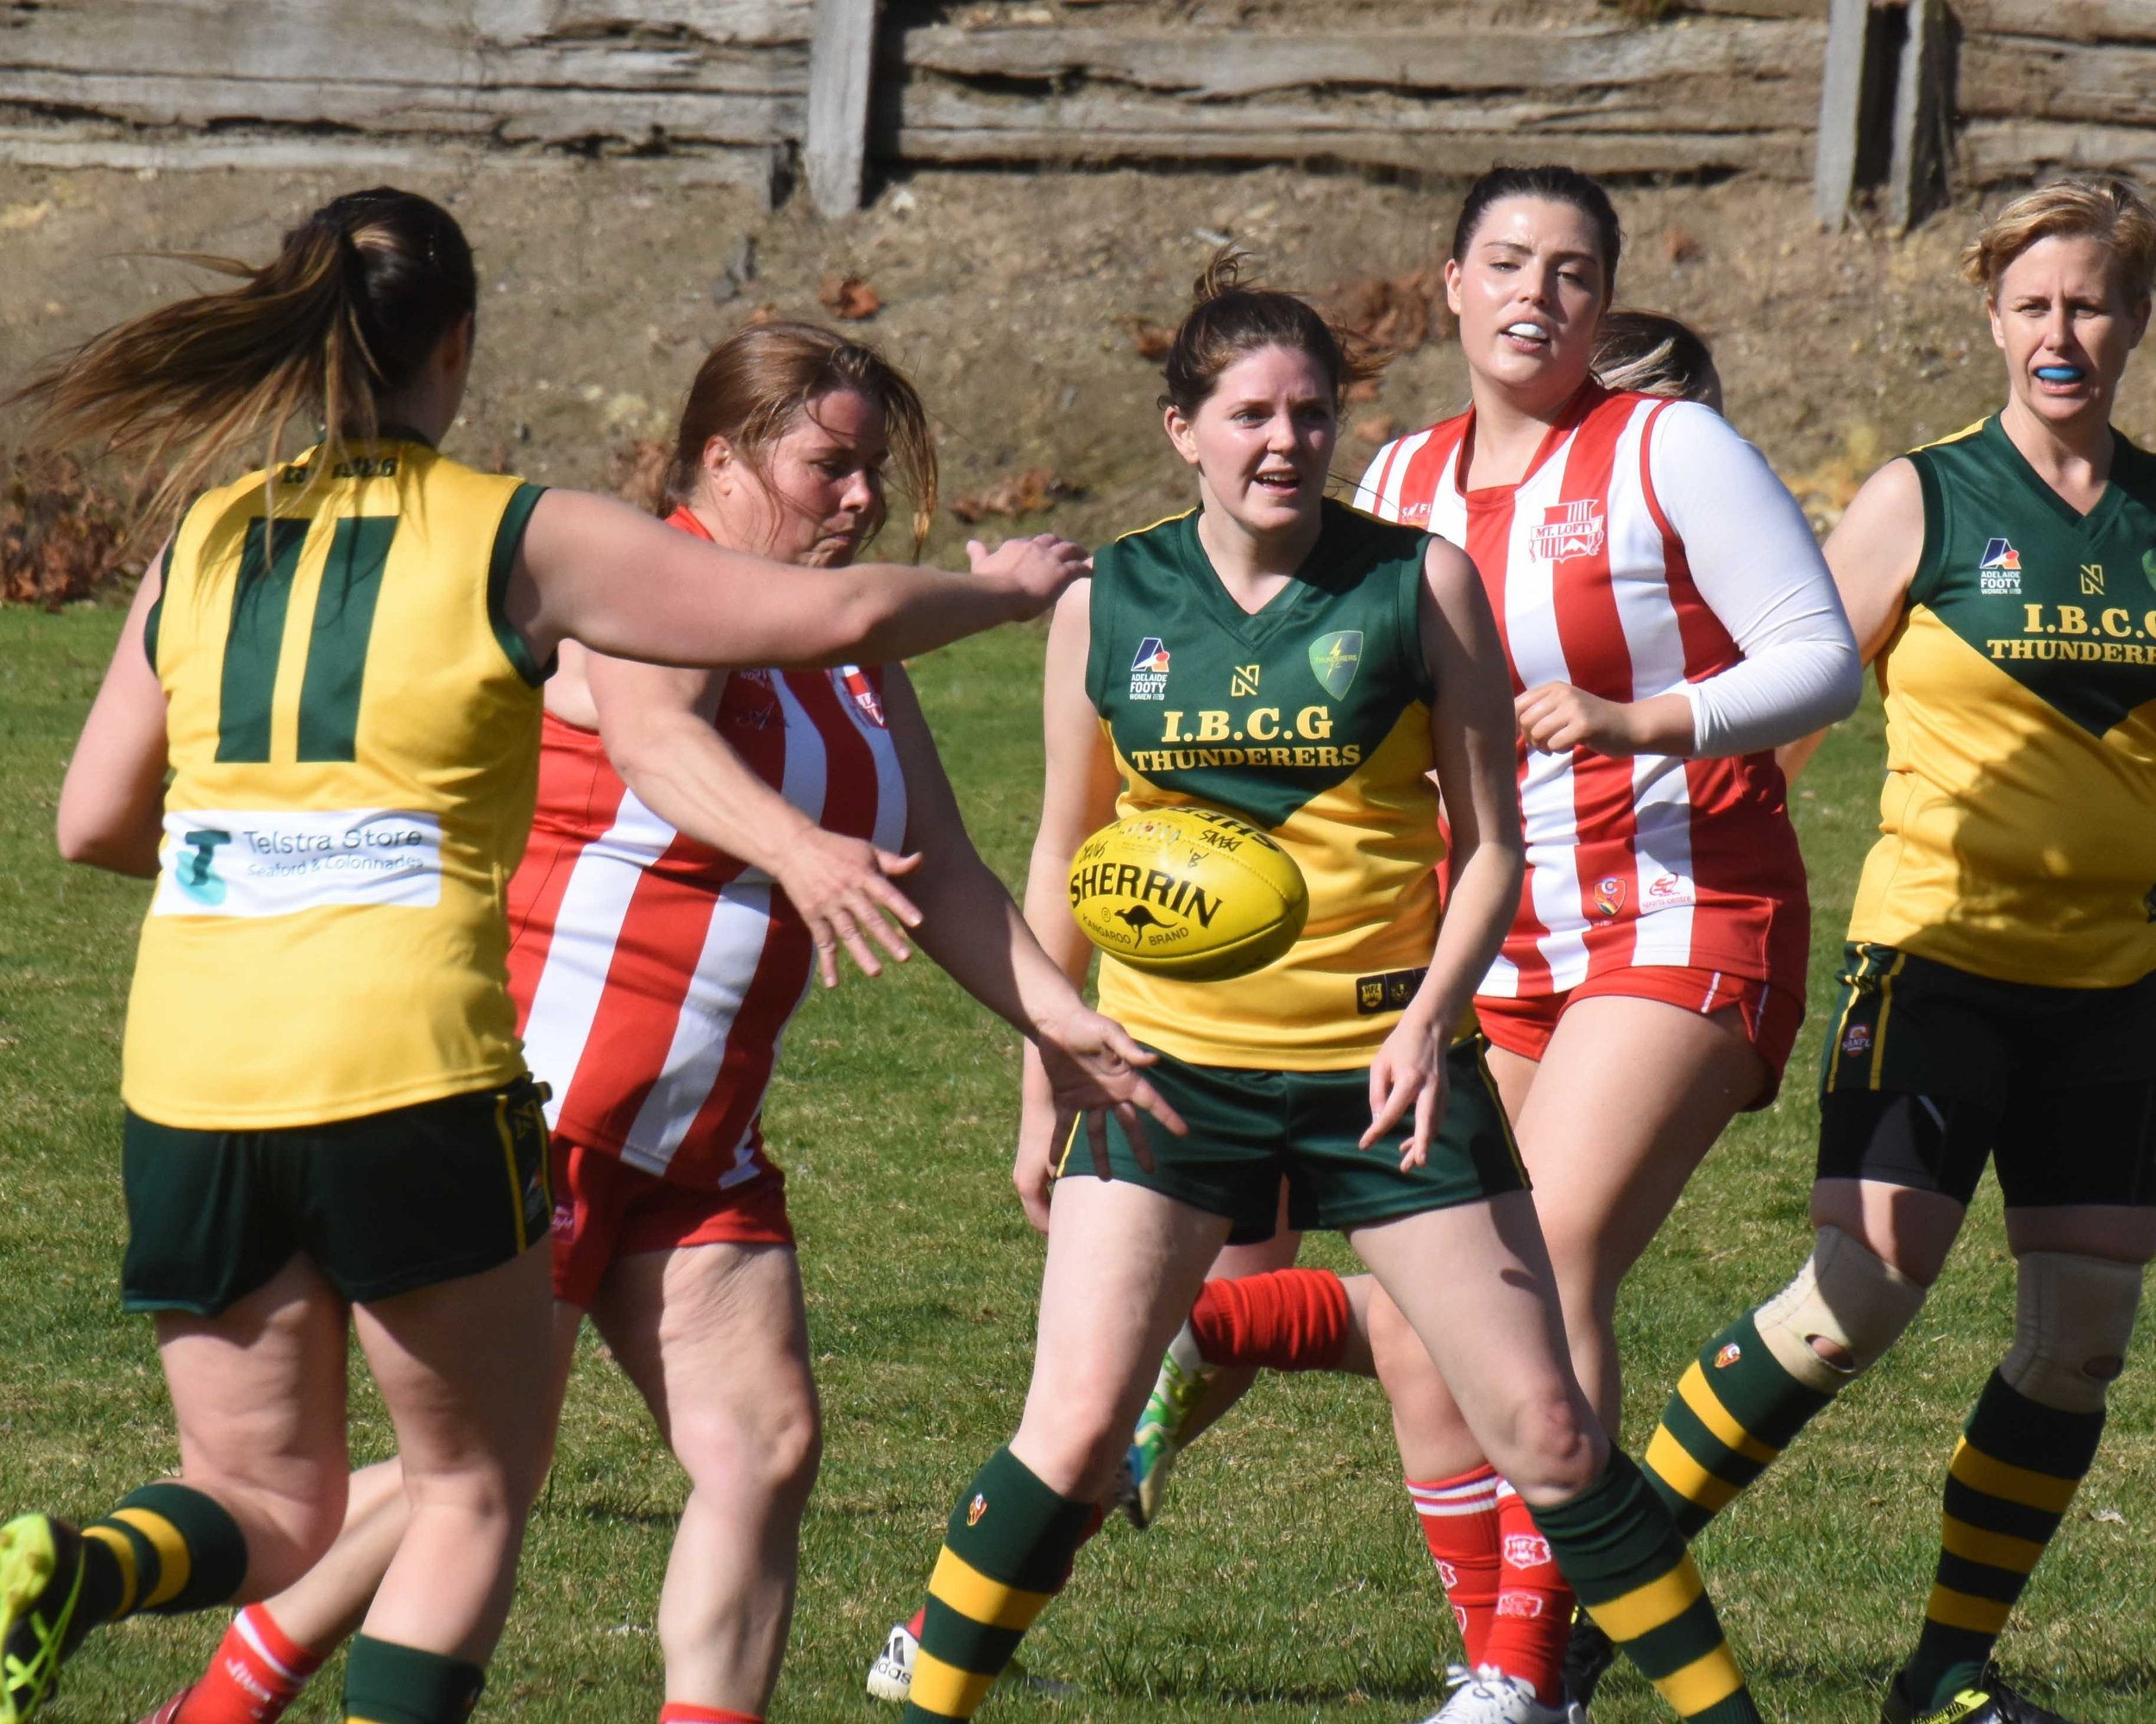 Mt Lofty game photo for Courier.jpg